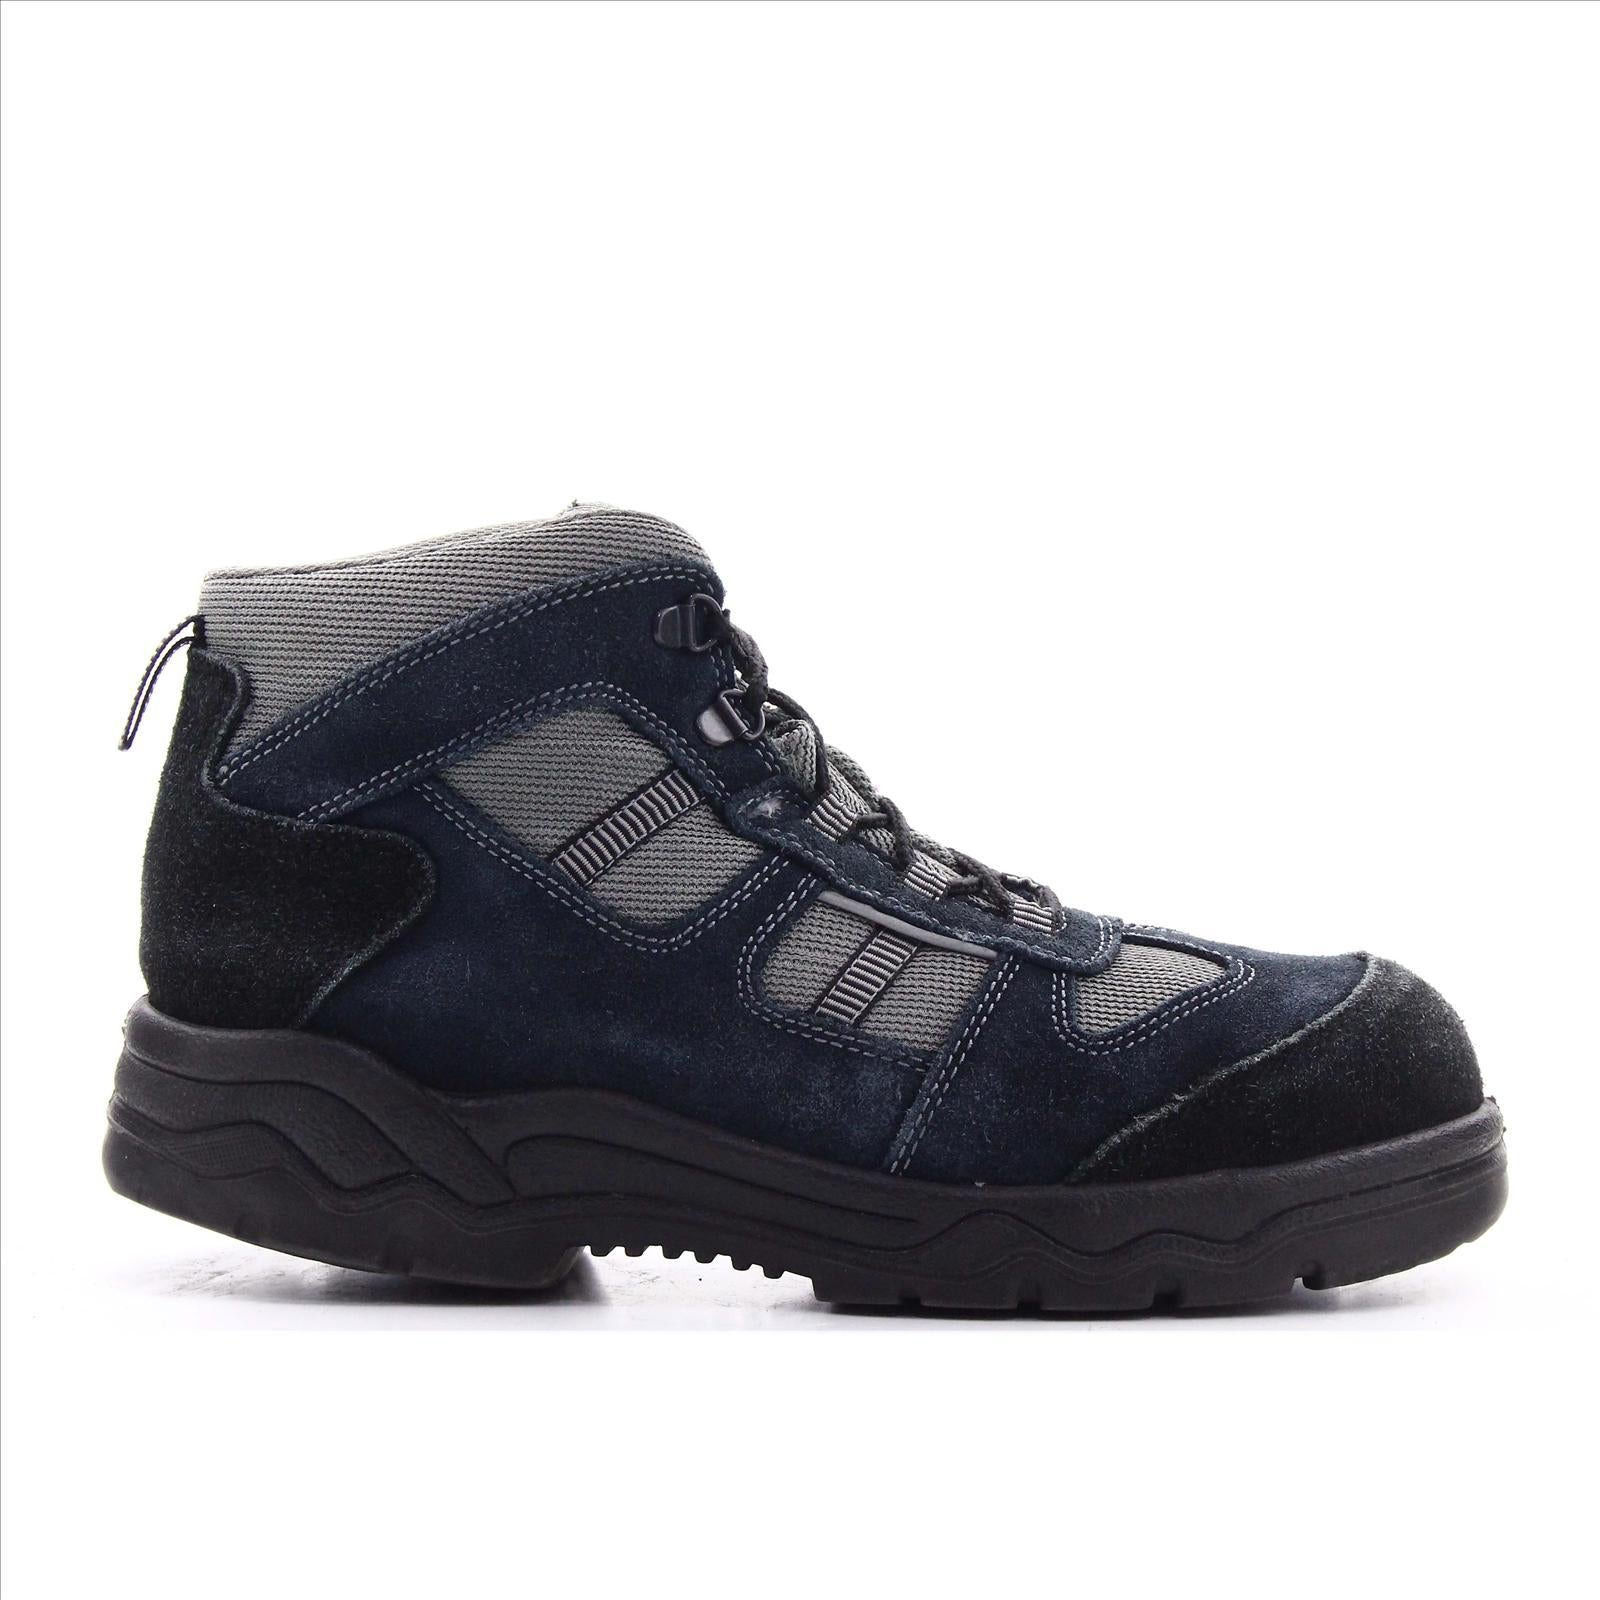 Shock Absorber Steel Toe Safety Boots